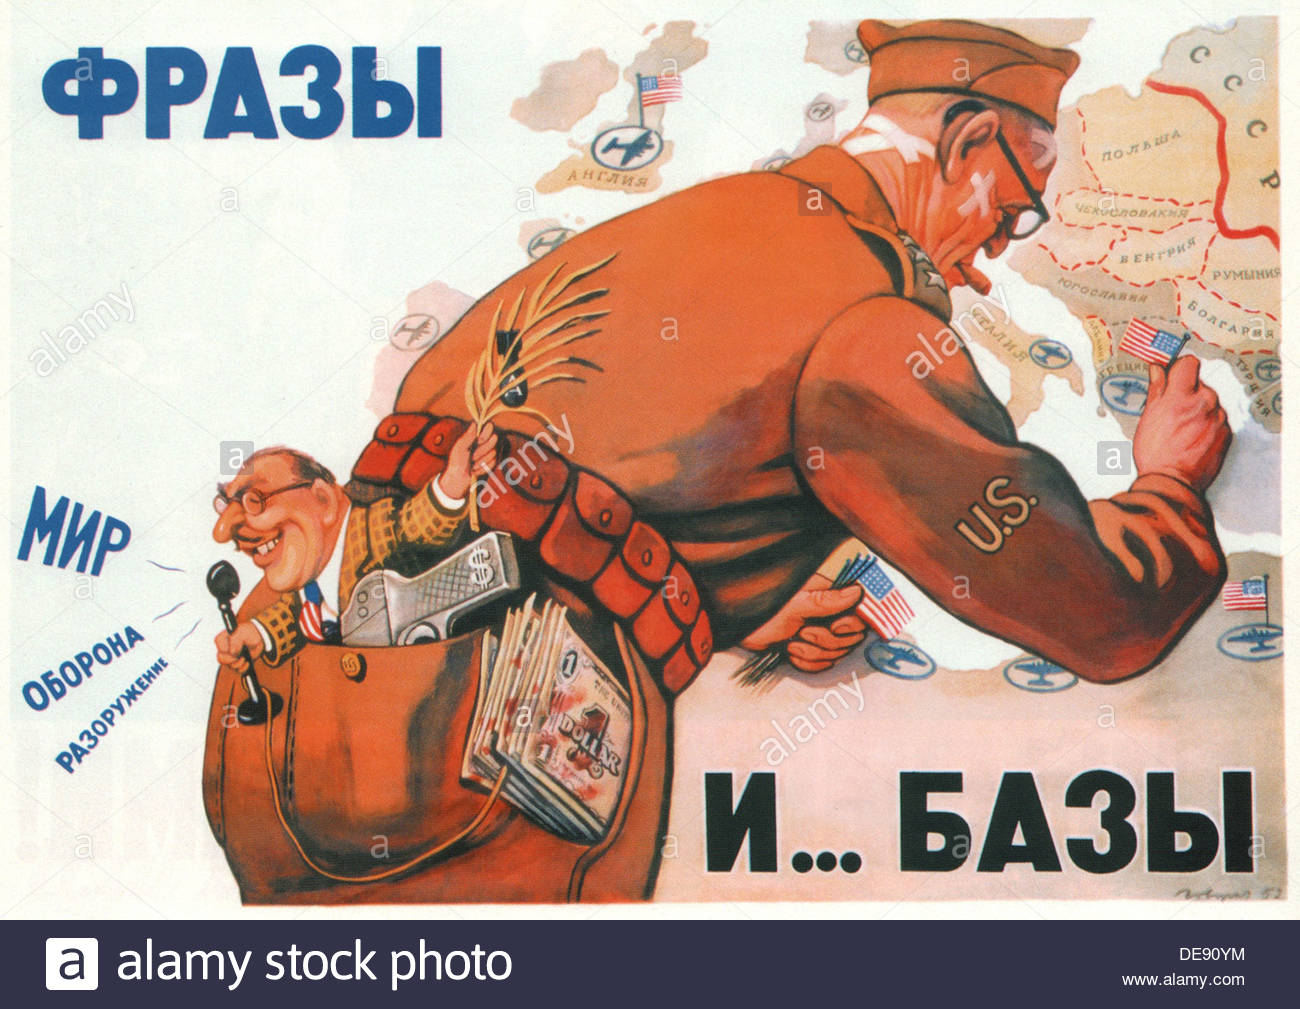 Phrases and...Bases, 1952. Artist: Govorkov, Viktor Iwanovich (1906-1974) - Stock Image